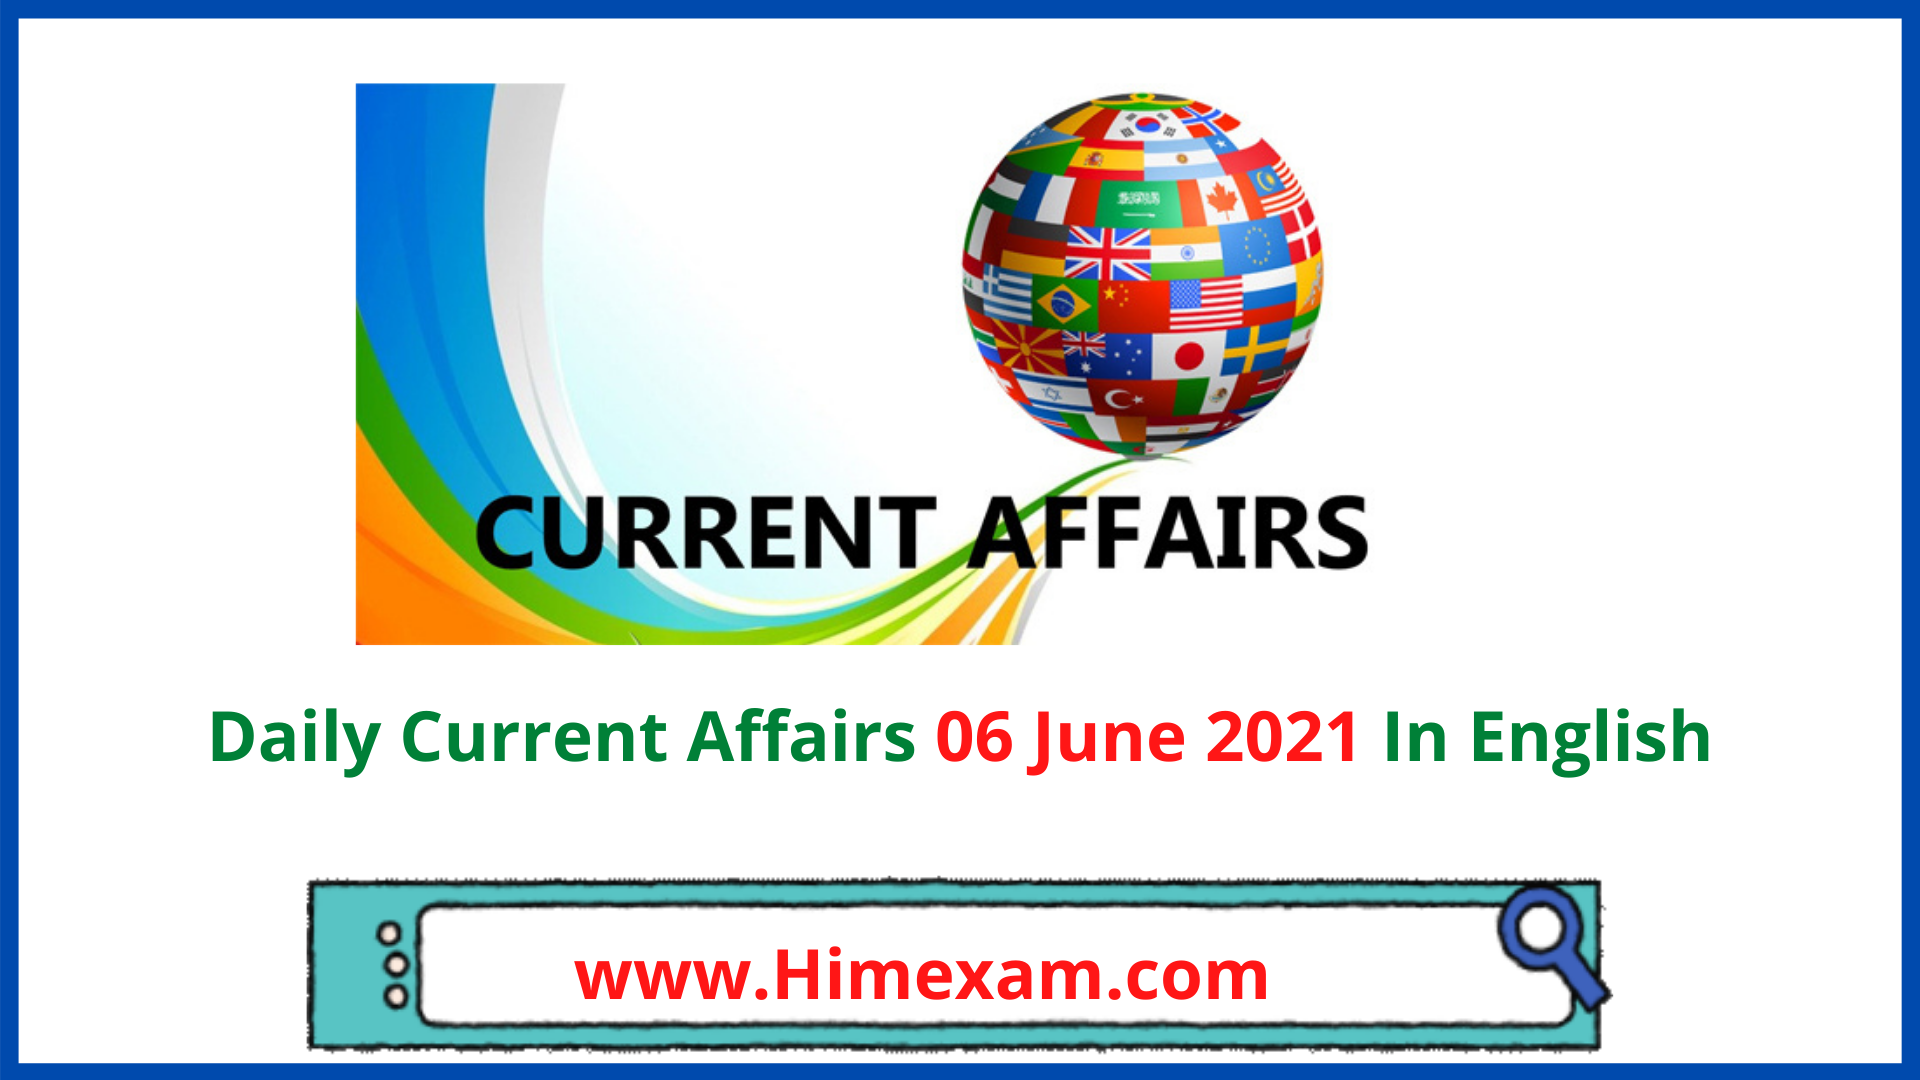 Daily Current Affairs 06 June 2021 in English